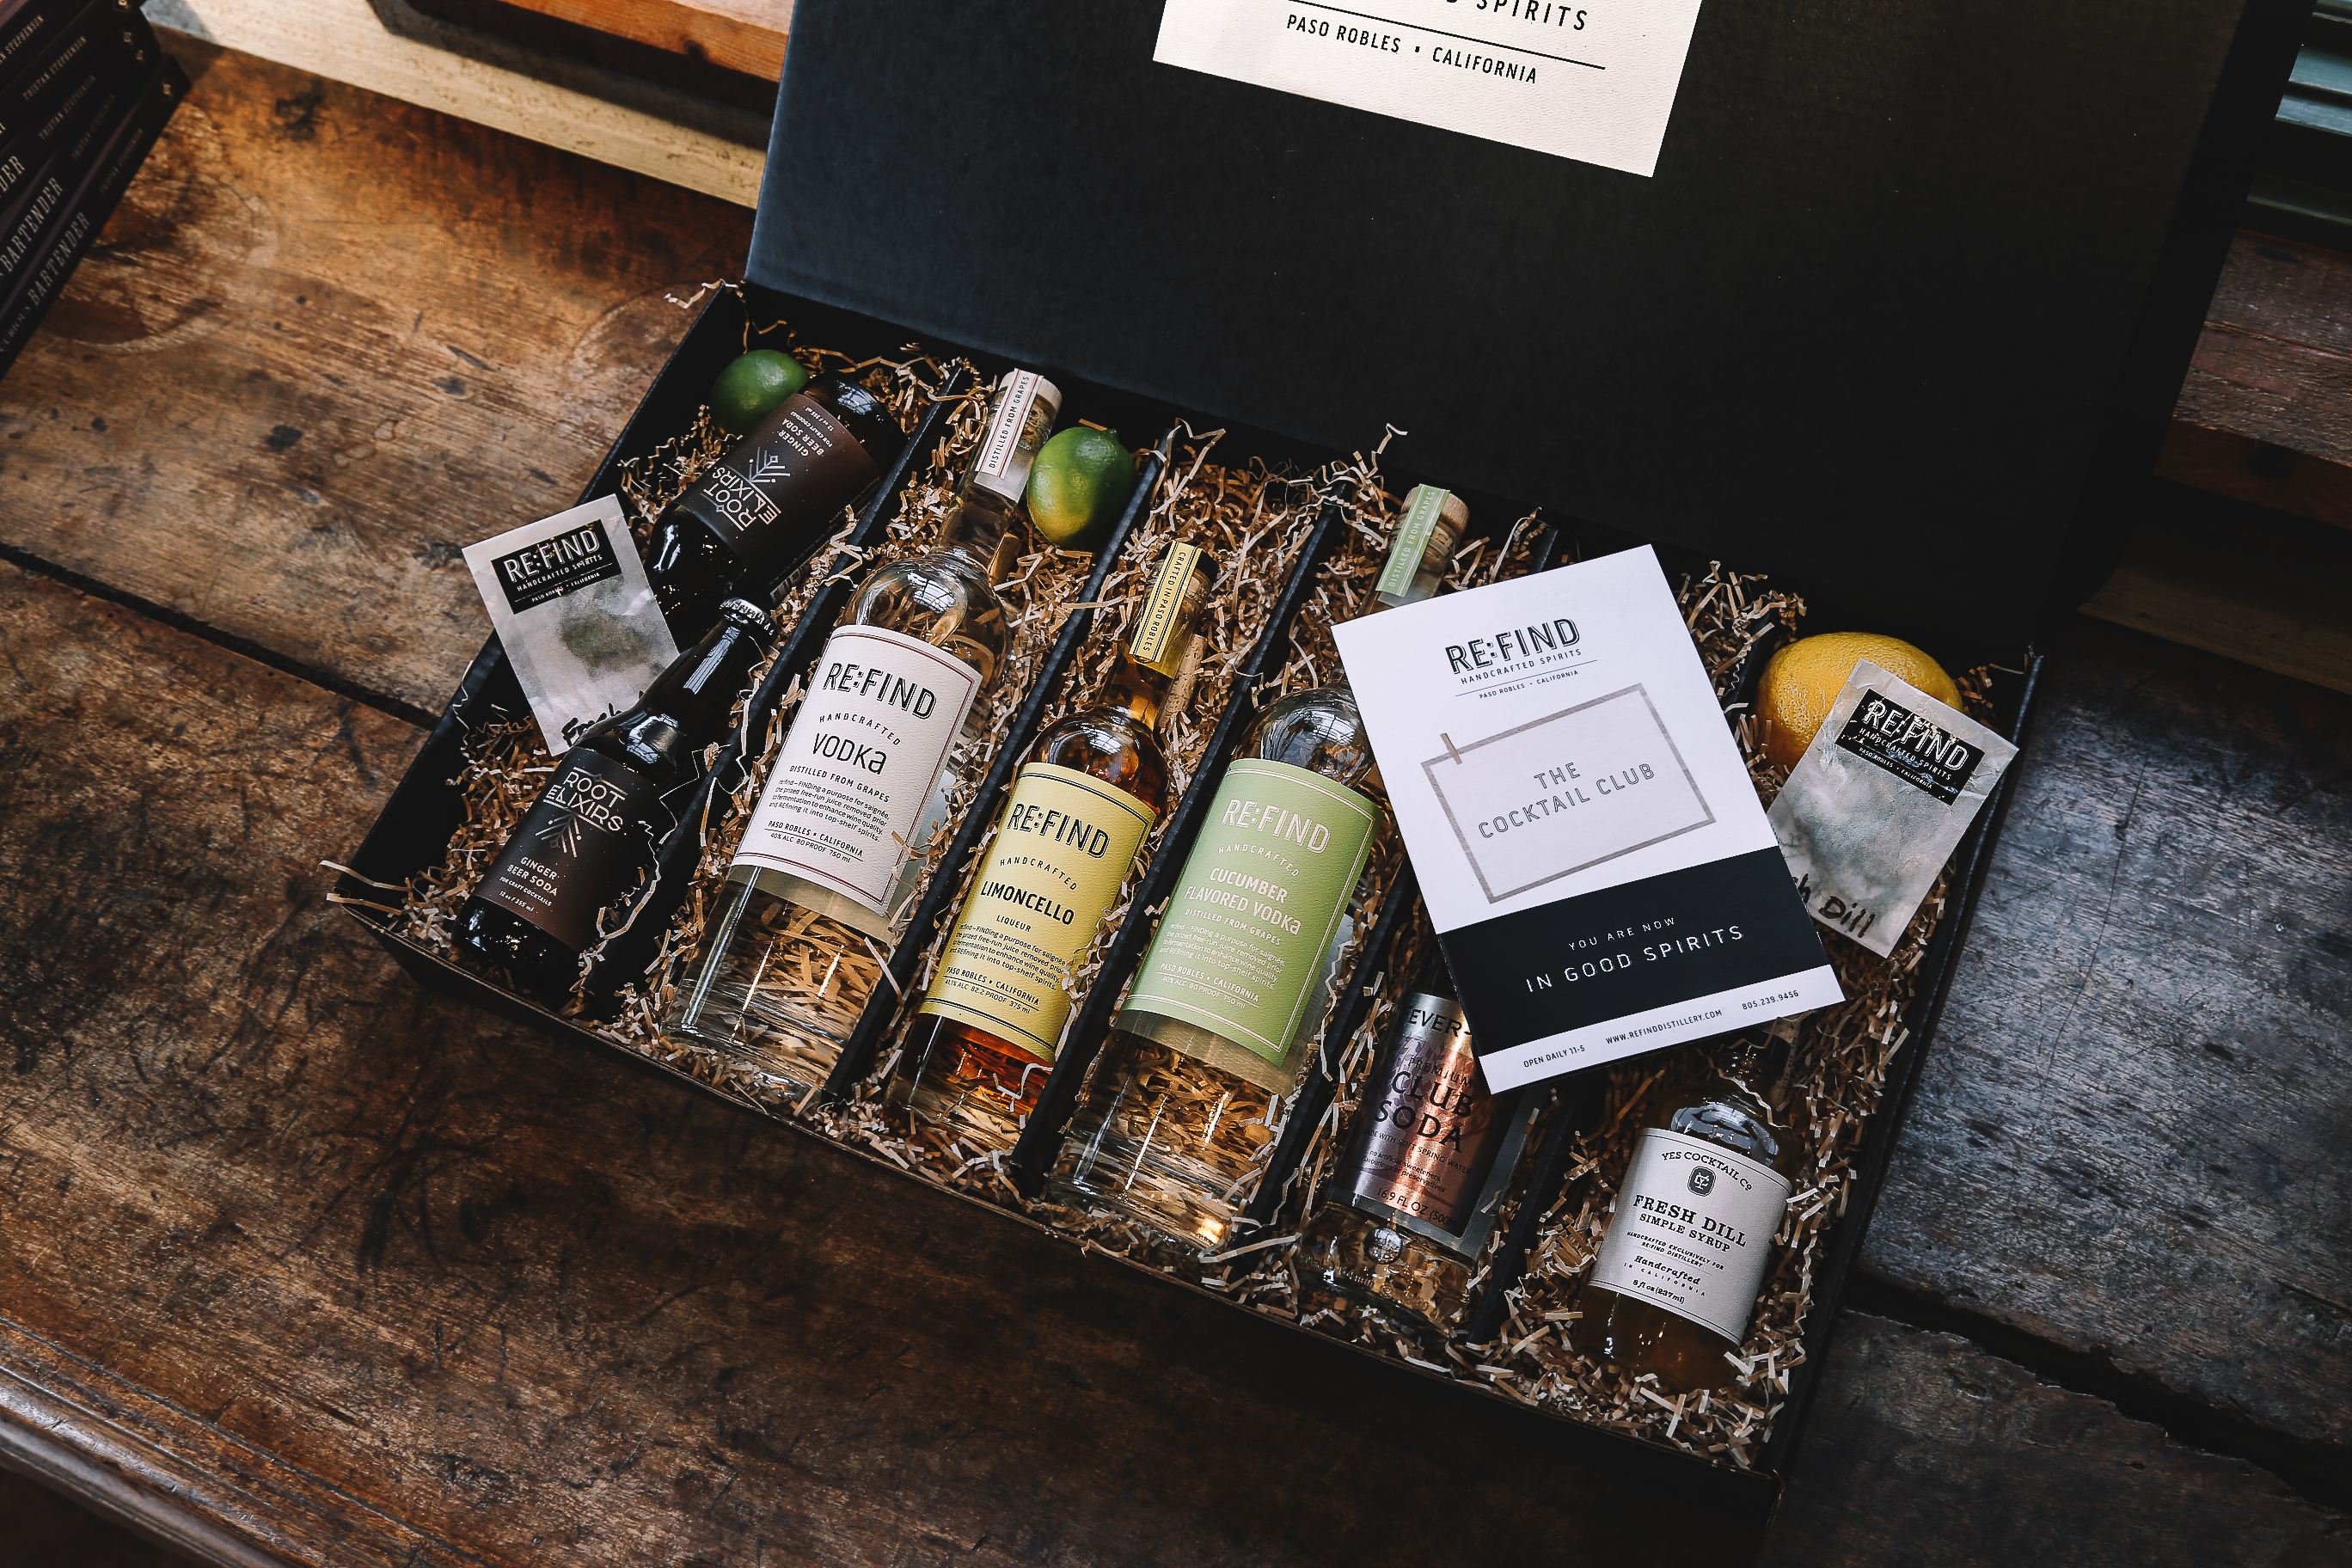 handcrafted spirits cocktail photography